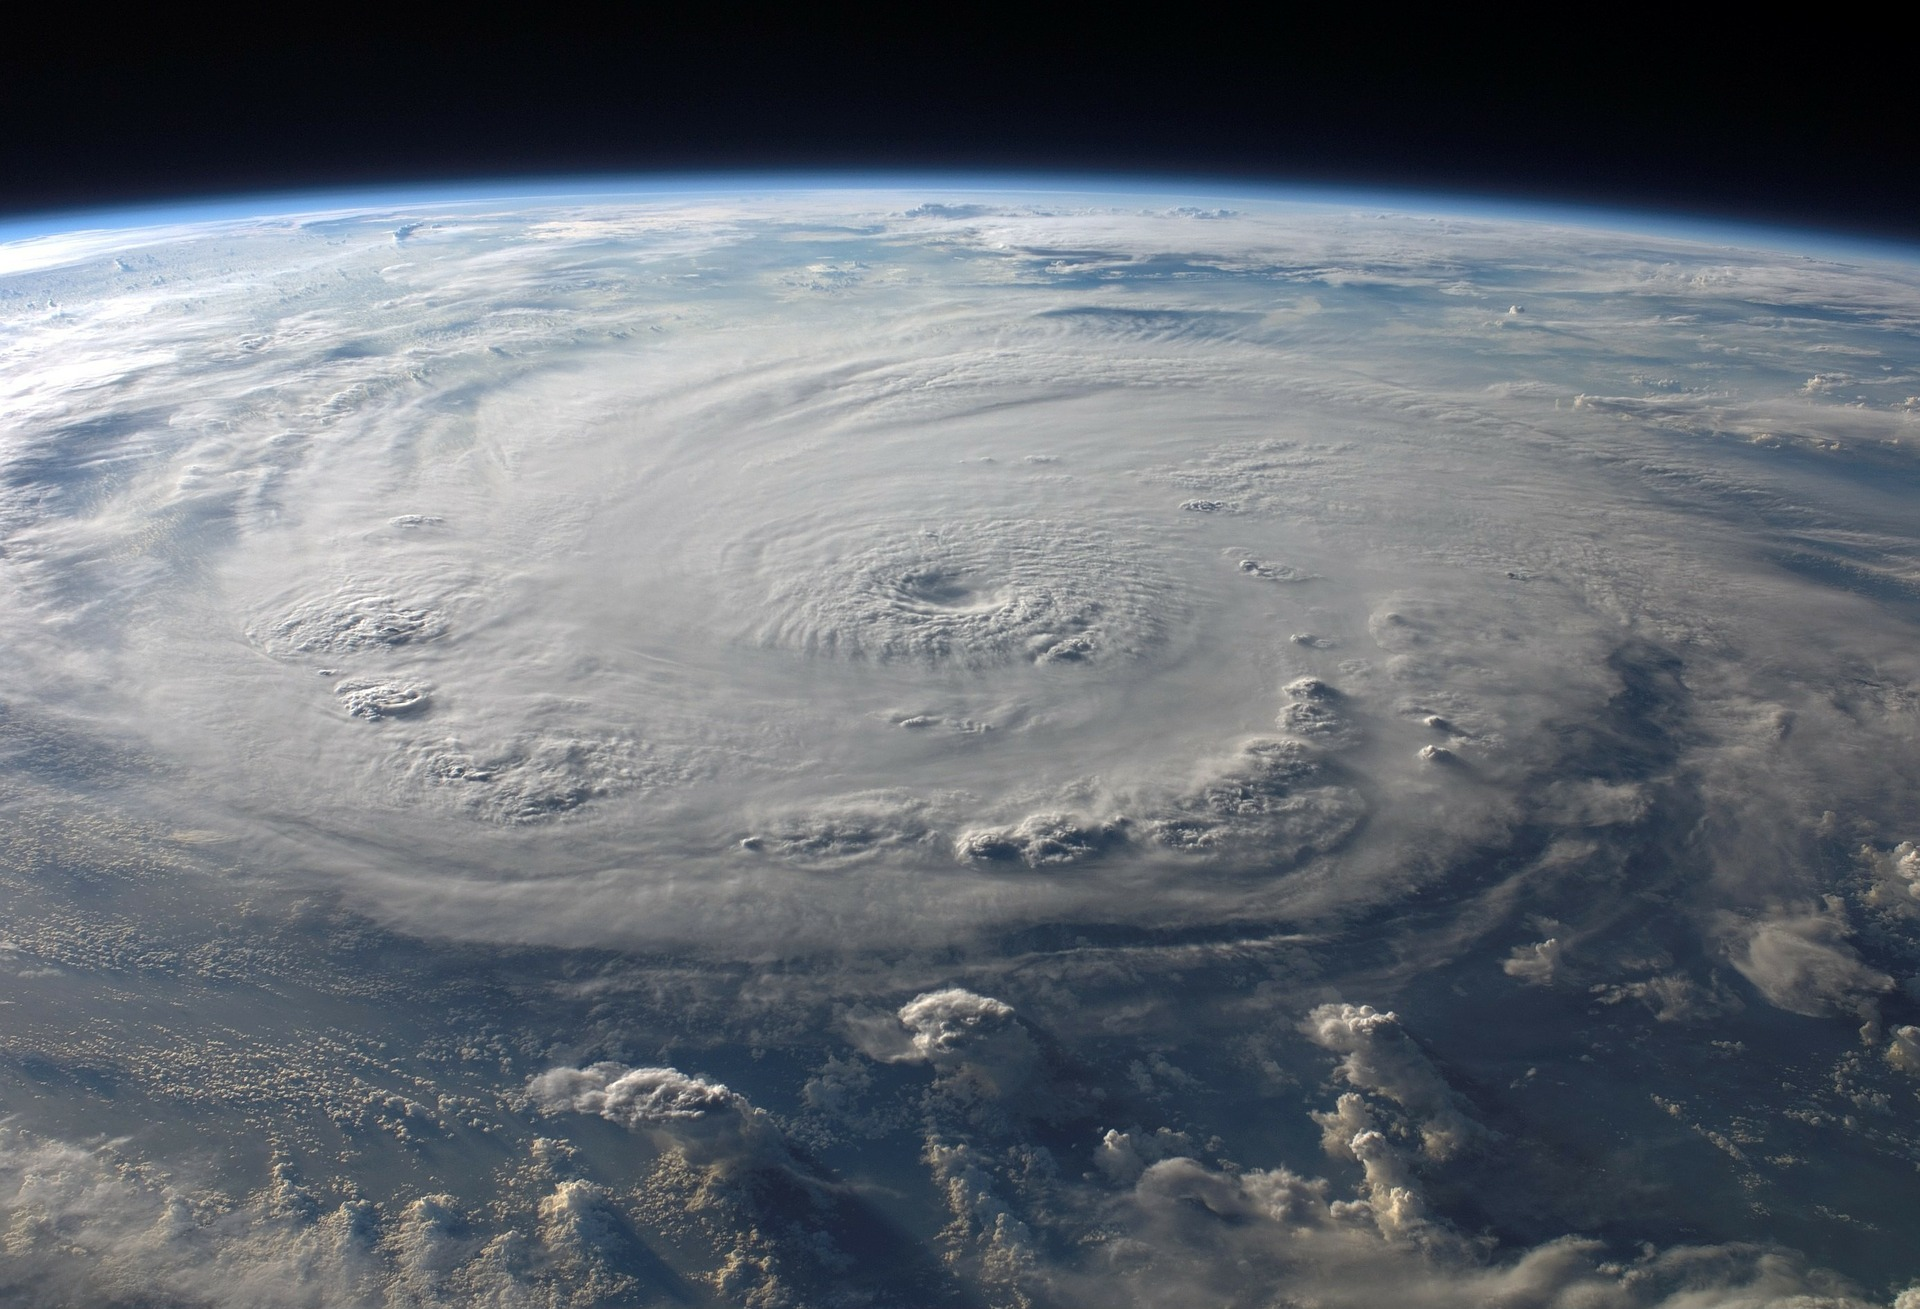 Hurricane Season 2020: Staying Safe During the 'New Normal'